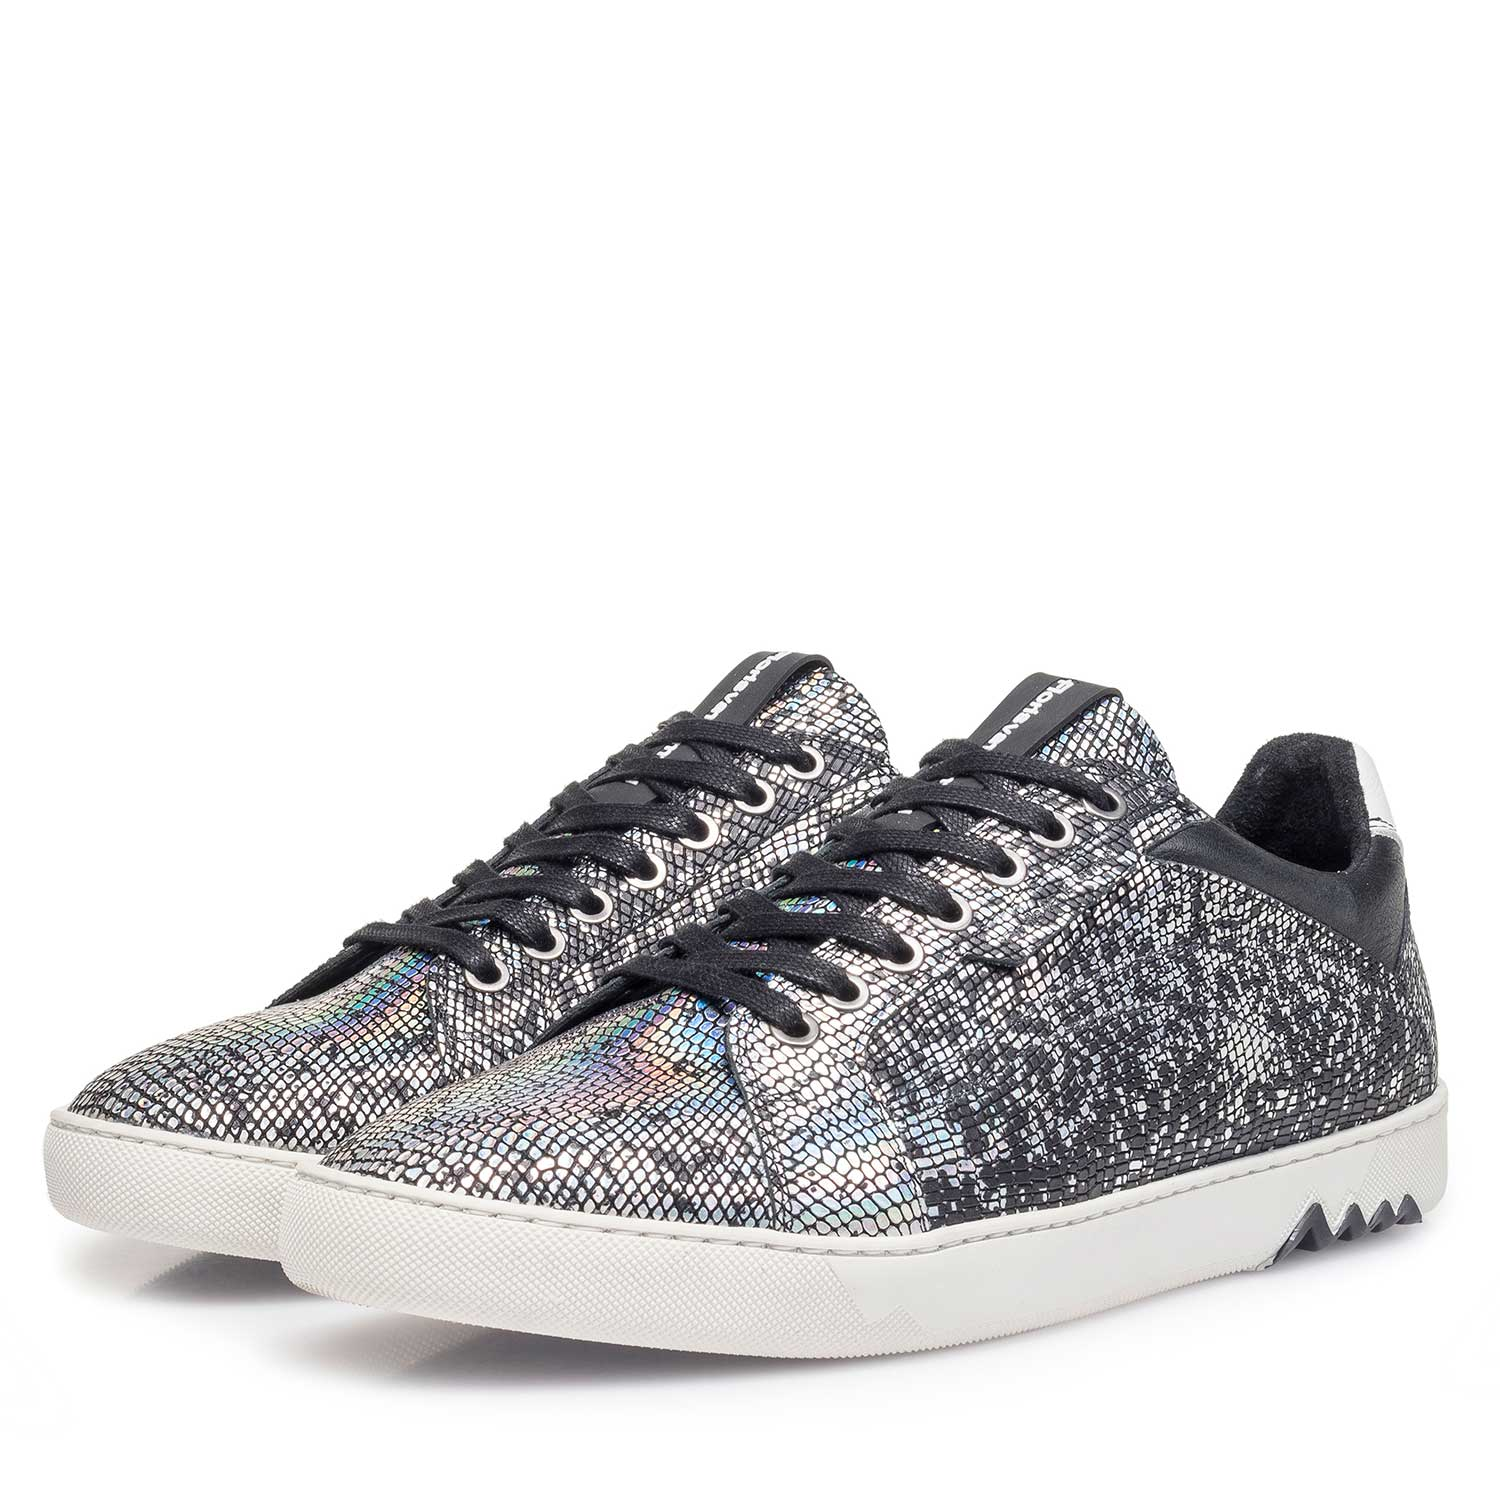 13342/00 - Silver-coloured premium leather lace shoe with metallic print